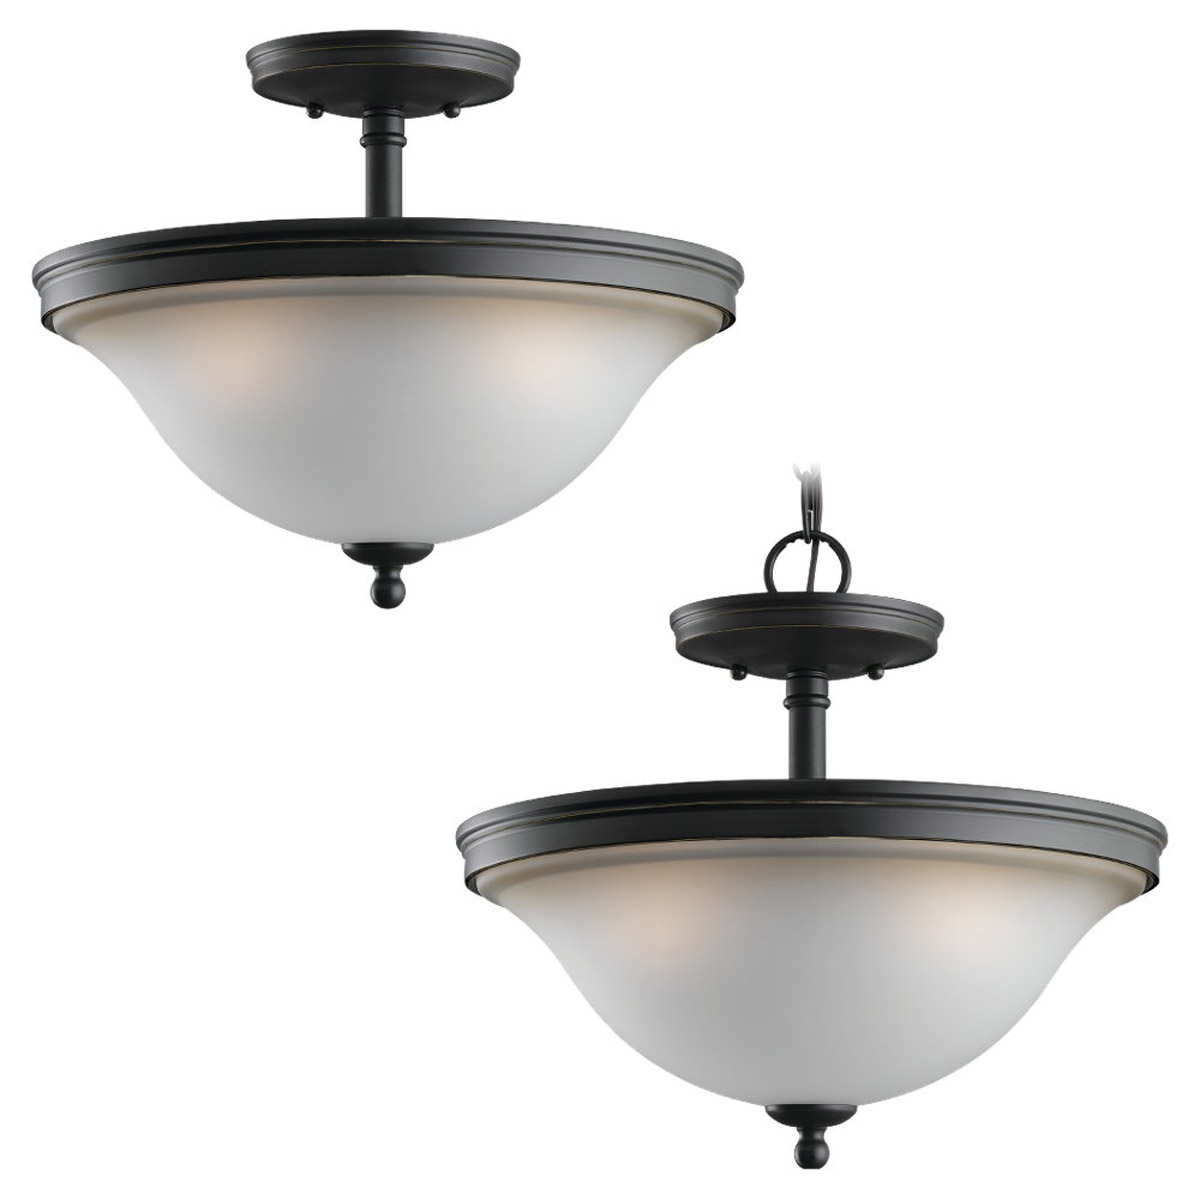 Sea Gull 77850-782 Gladstone 3 Light 14 inch Heirloom Bronze Semi-Flush Mount Ceiling Light in Smokey Amber Glass photo